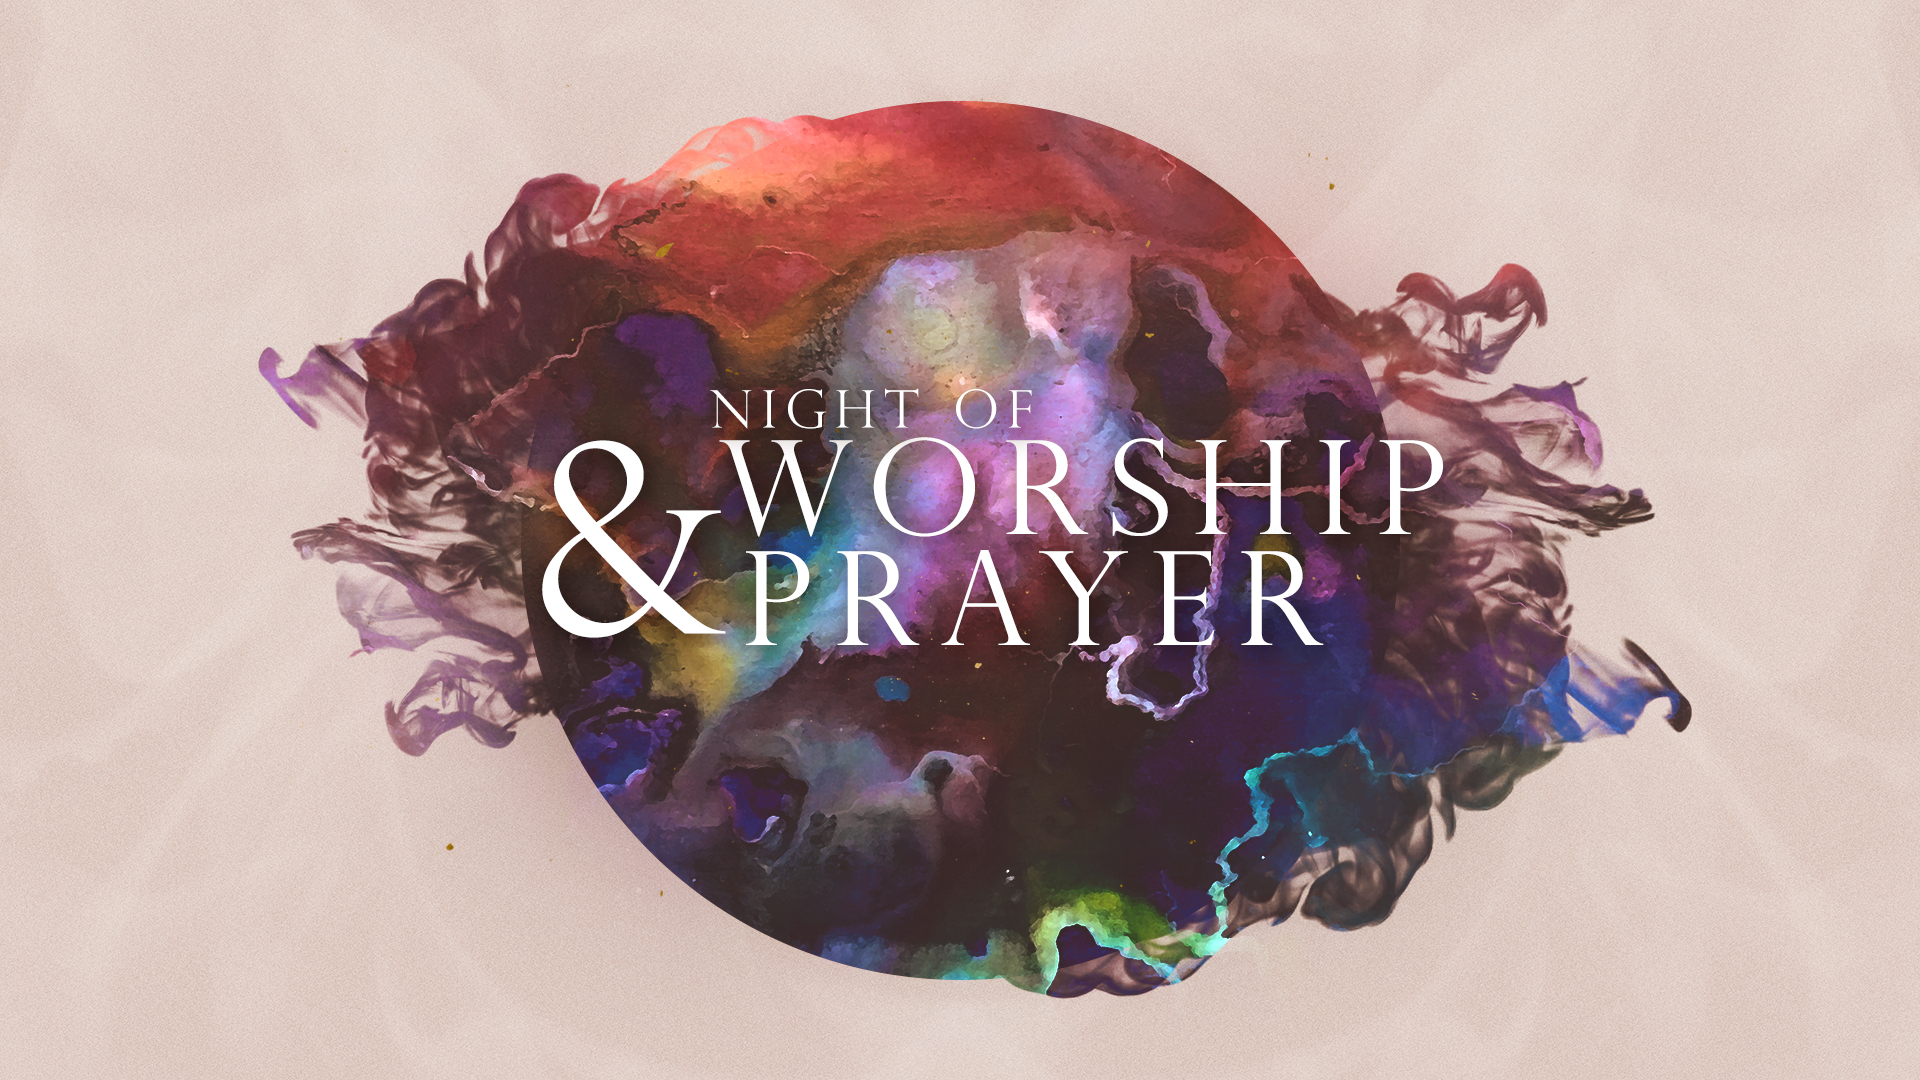 Worship & Prayer Night